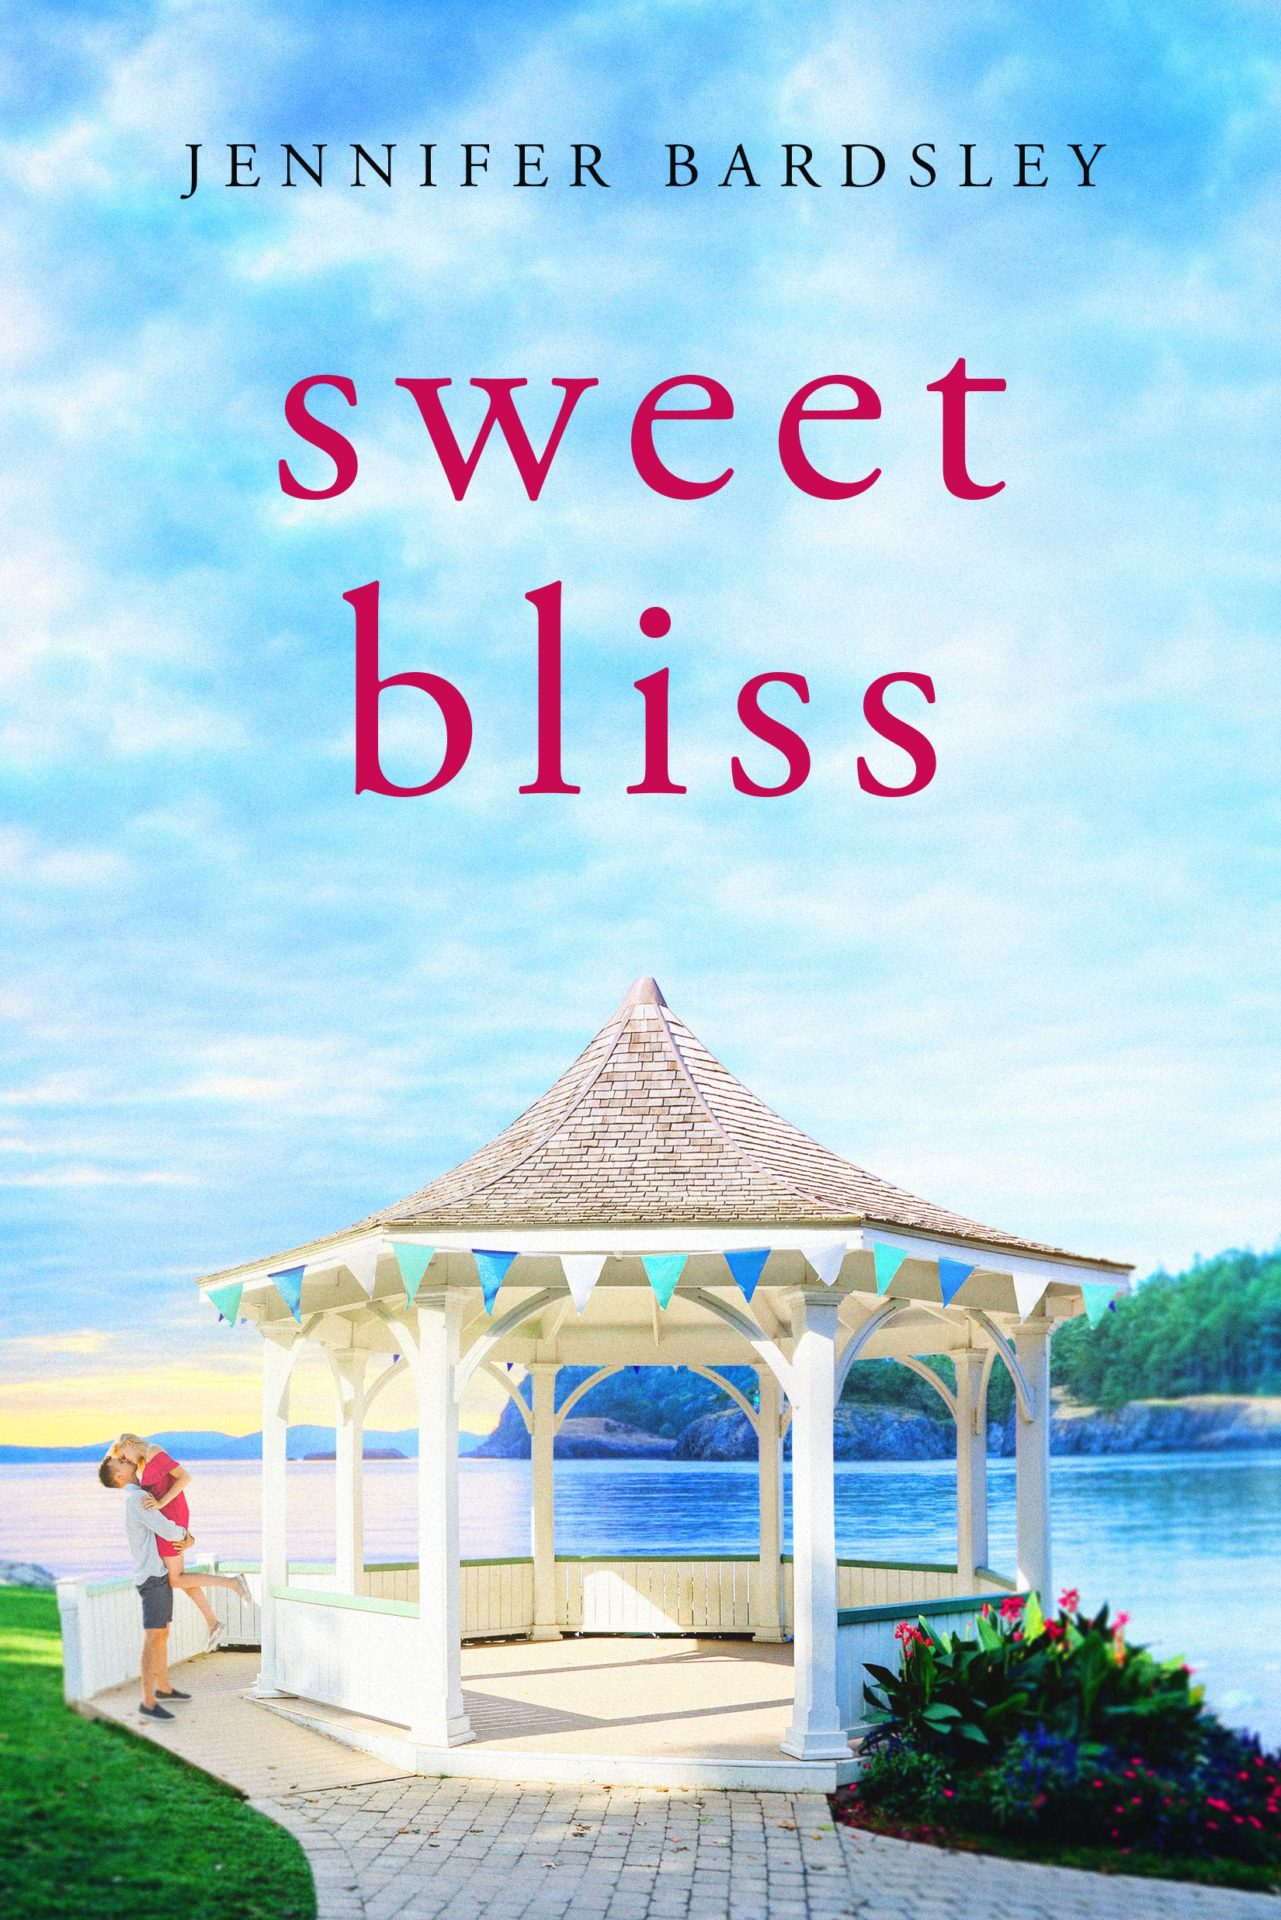 [Book Tour] Sweet Bliss – Jennifer Bardsley